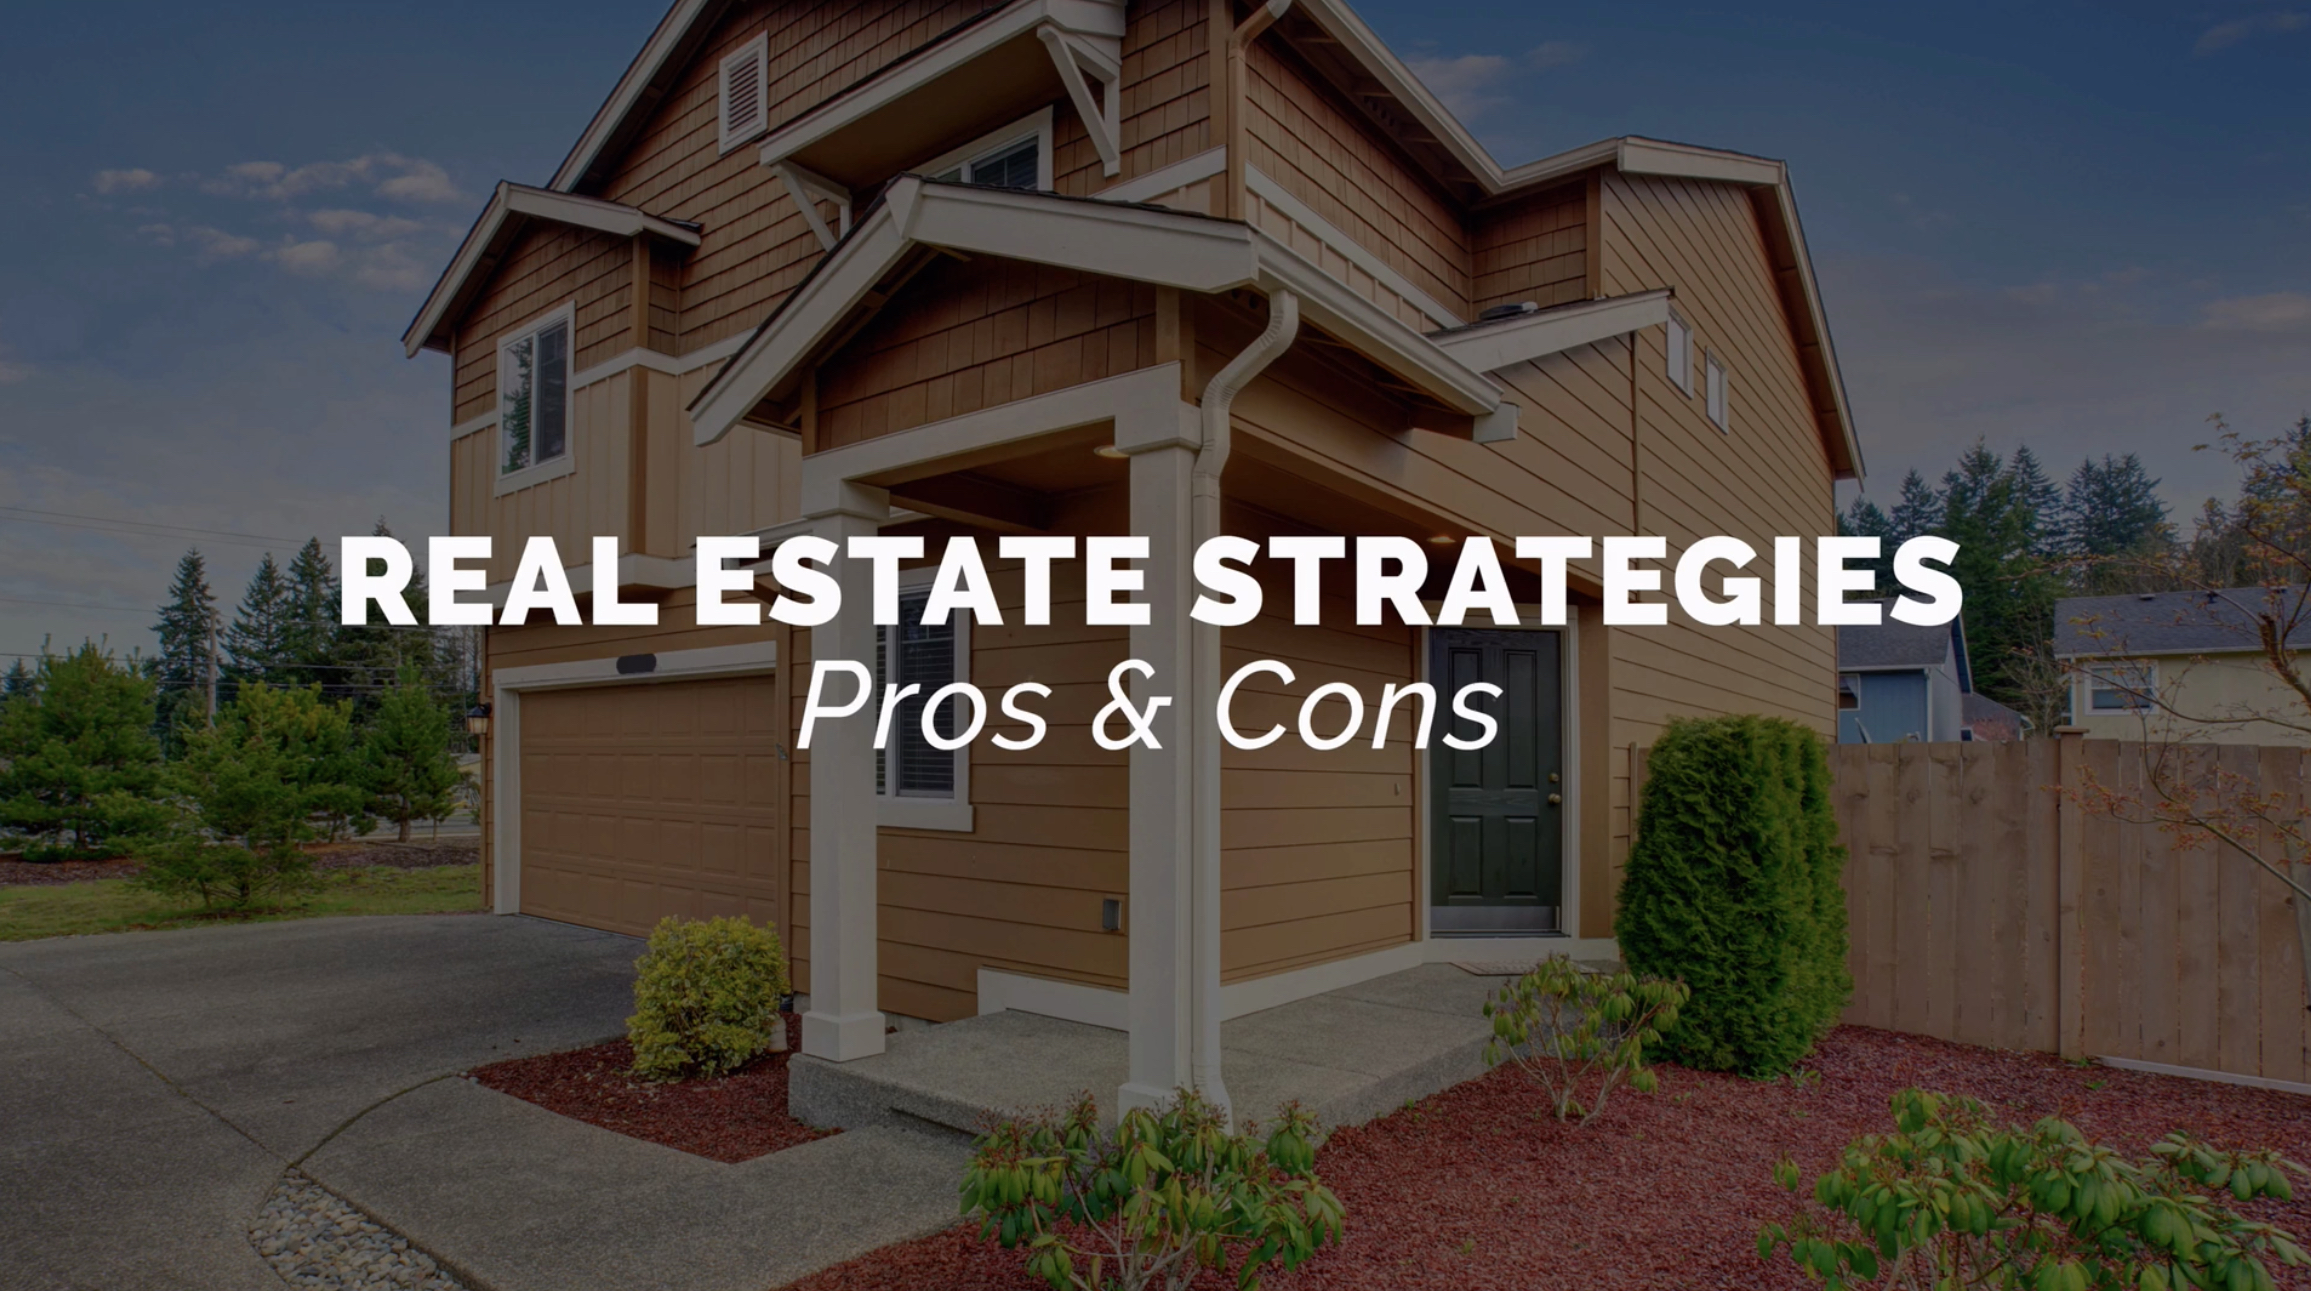 Real Estate Strategies... the Pros and Cons